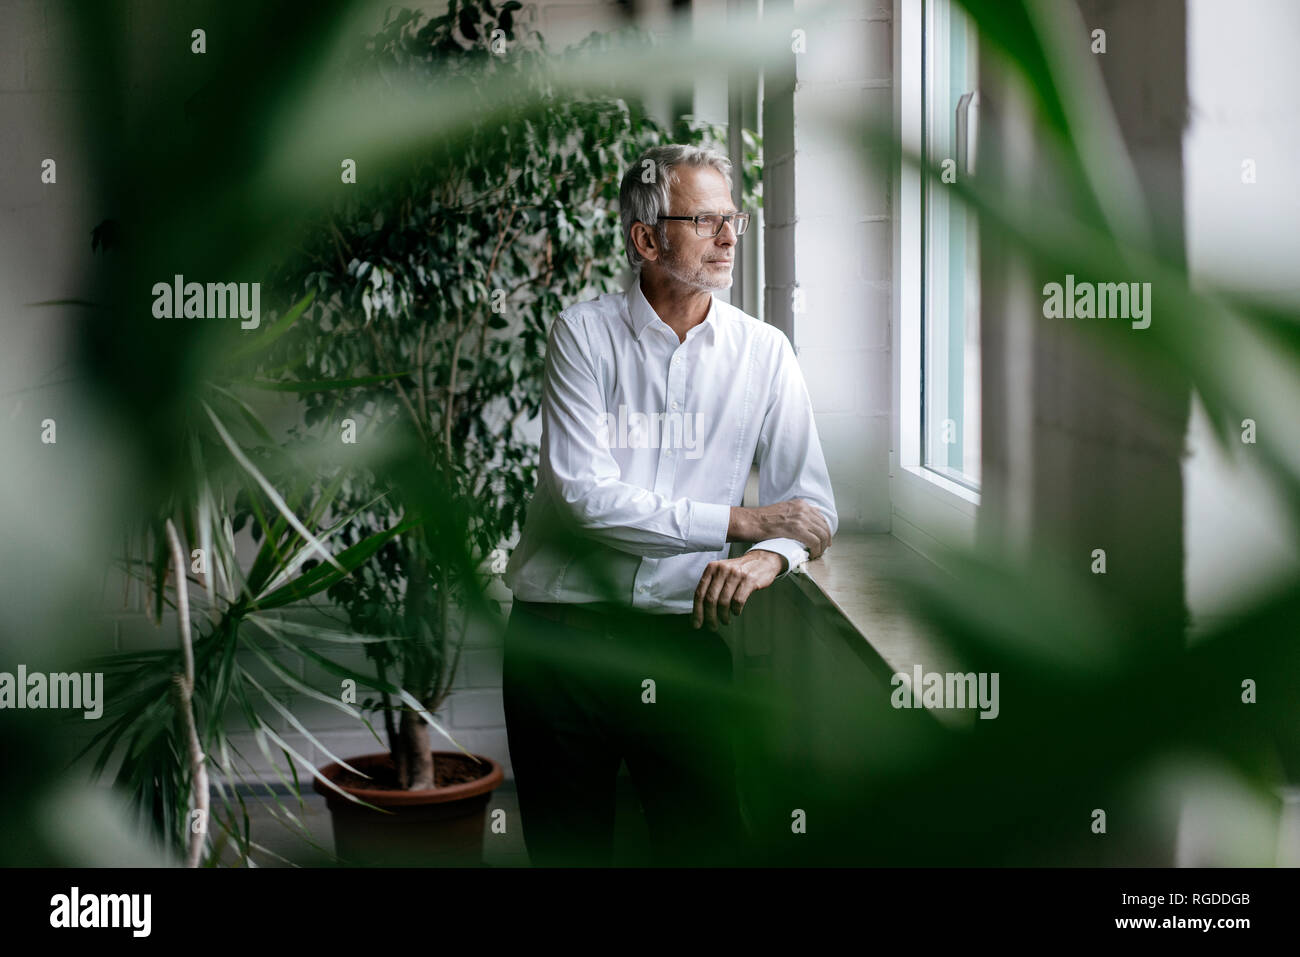 Businessman taking a break, looking out of window - Stock Image